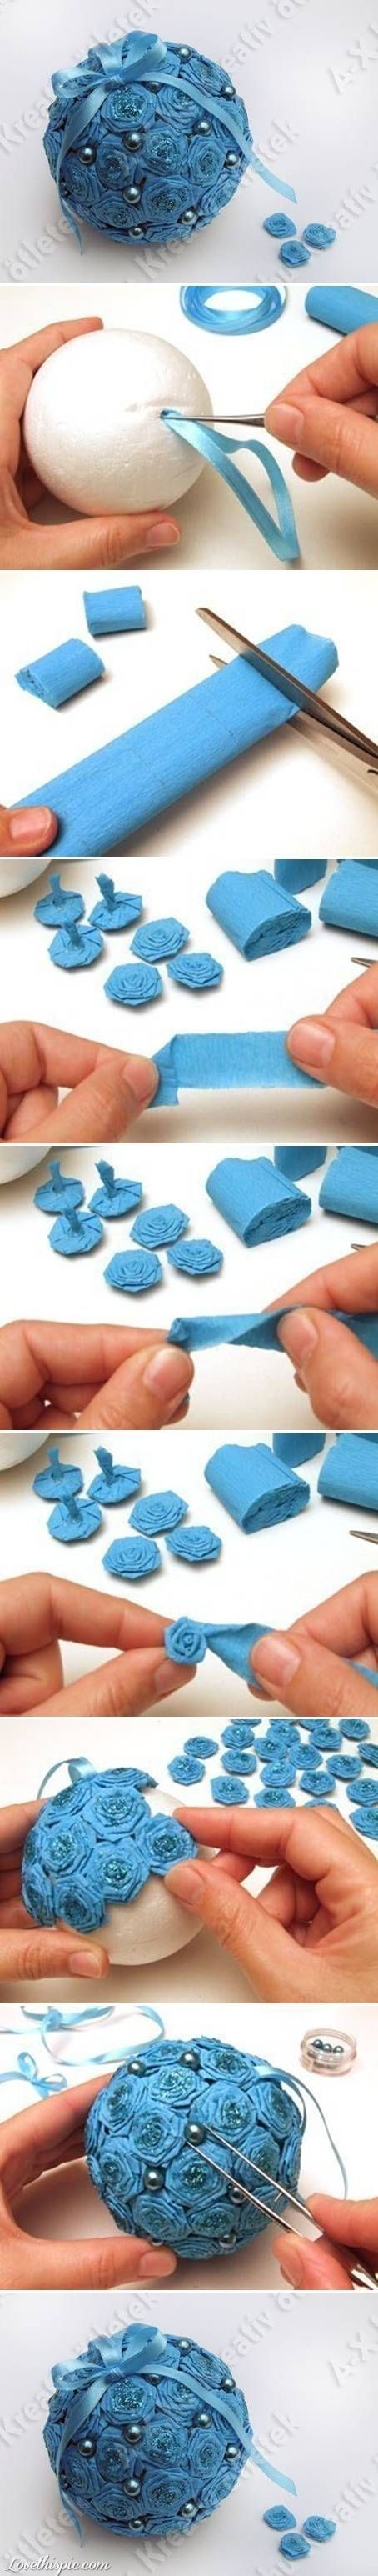 DIY Crepe Paper Flower Ball flowers diy crafts home made easy crafts craft idea crafts ideas diy ideas diy crafts diy idea do it yourself diy projects diy decor diy craft decorations